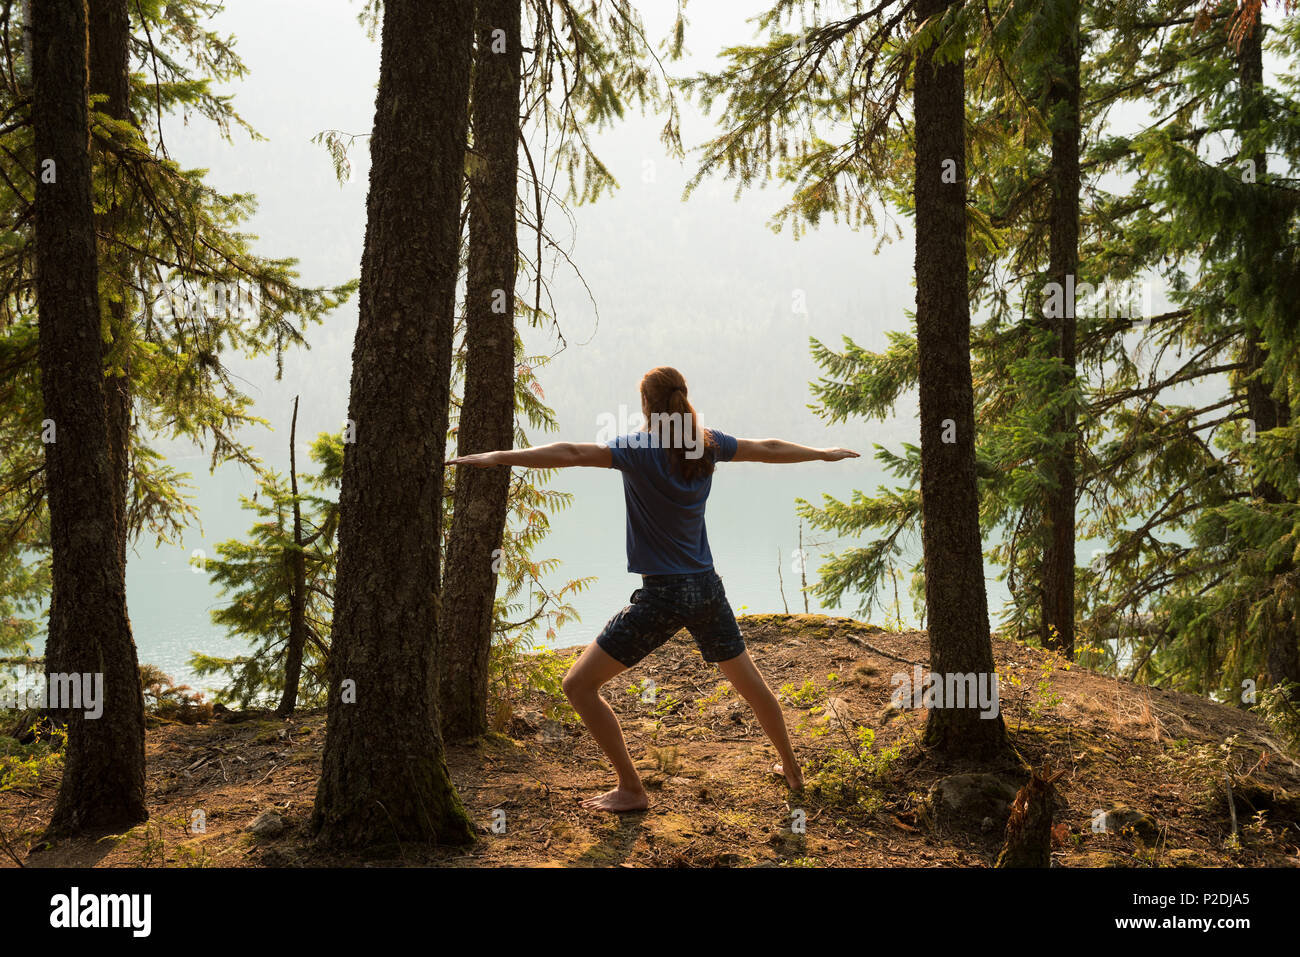 Fit man performing stretching exercise in a lush green forest - Stock Image